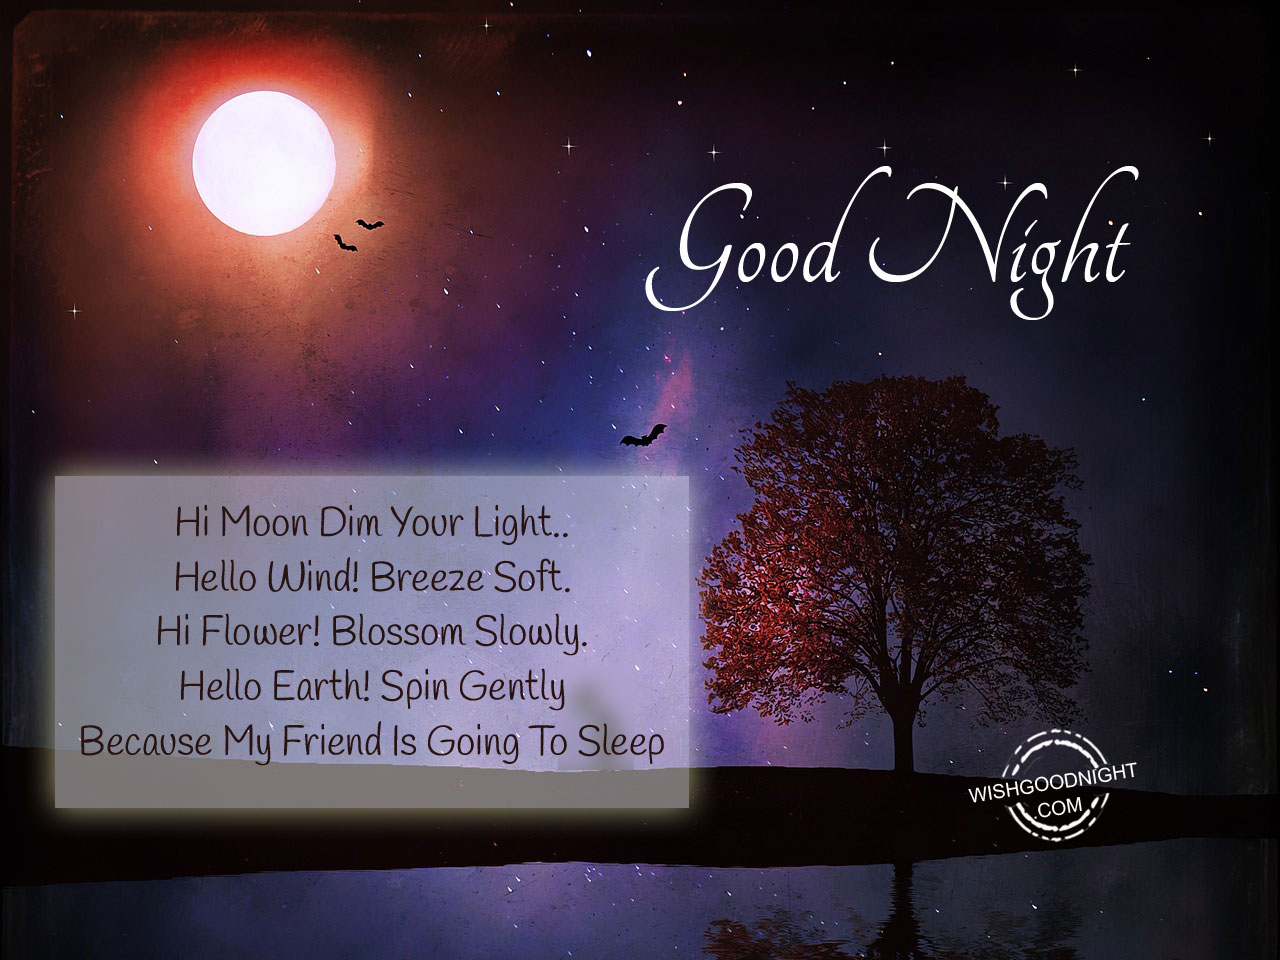 Good Night Wishes For Friends Good Night Pictures Wishgoodnightcom